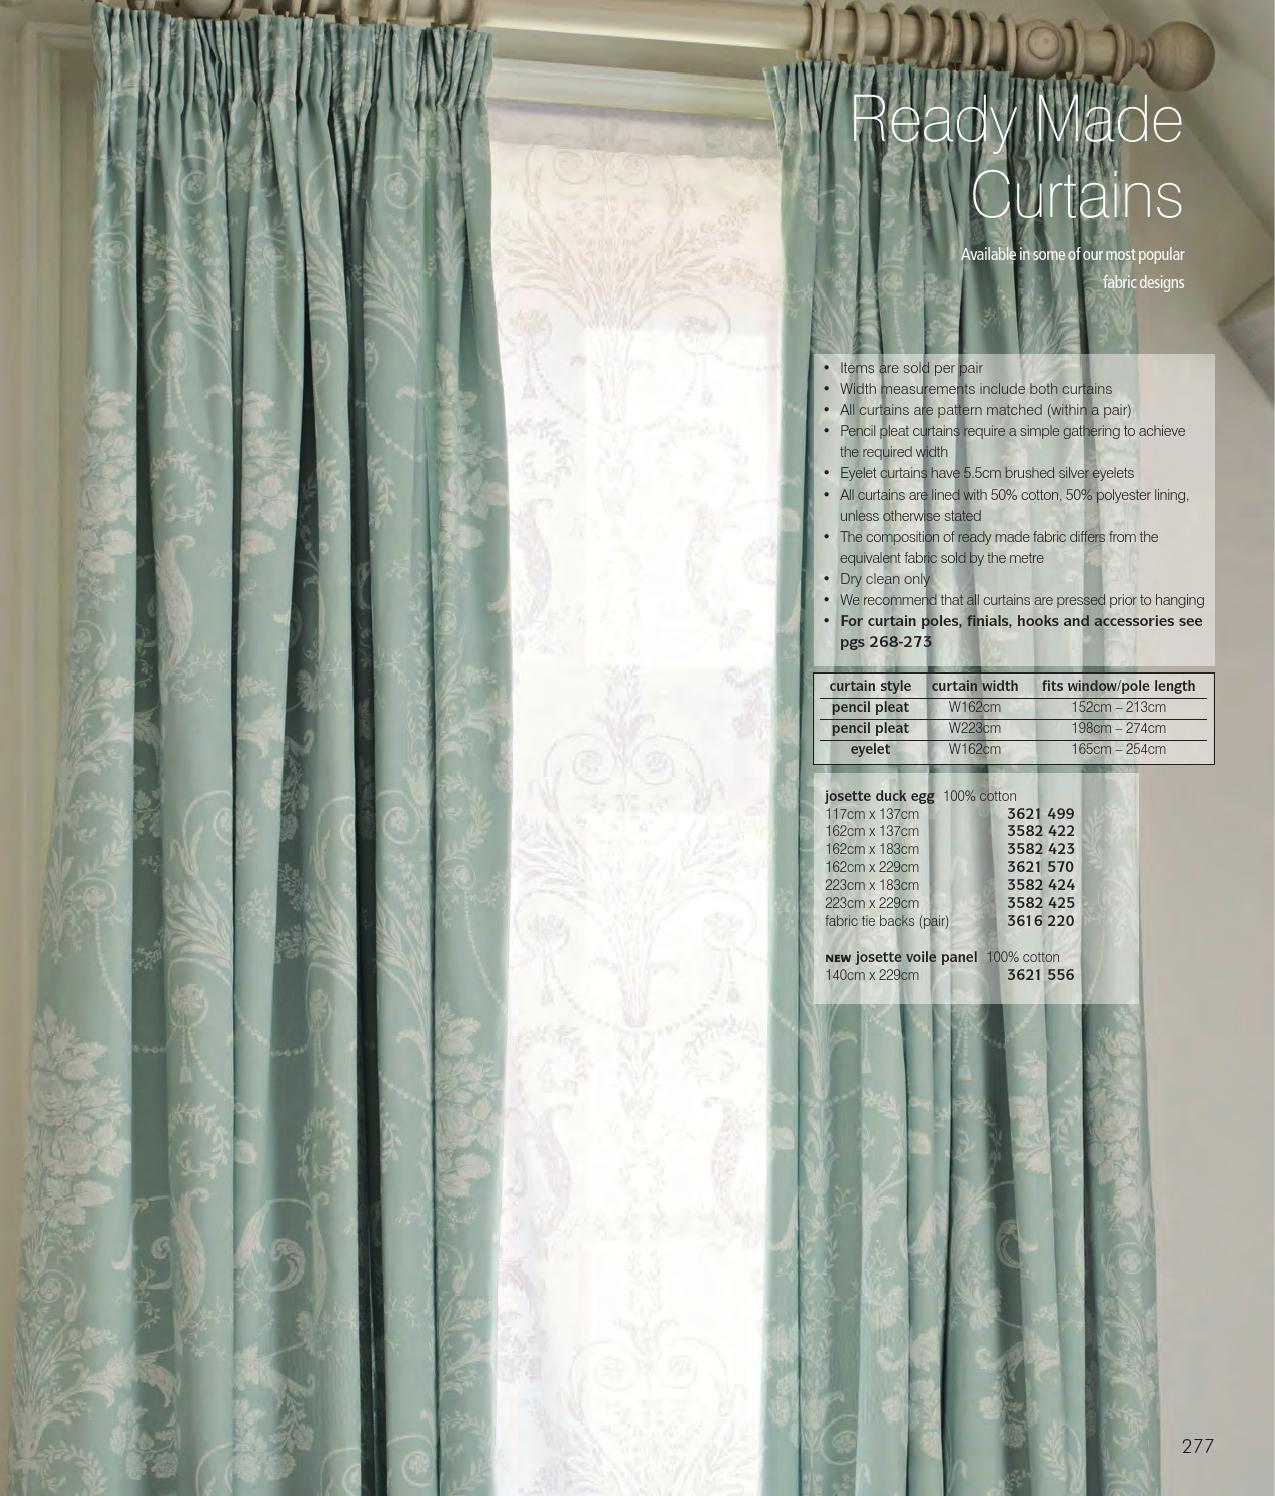 Curtains & Blinds Laura Ashely Curtains And Tie Backs Josette Duck Egg Eyelet Brand New